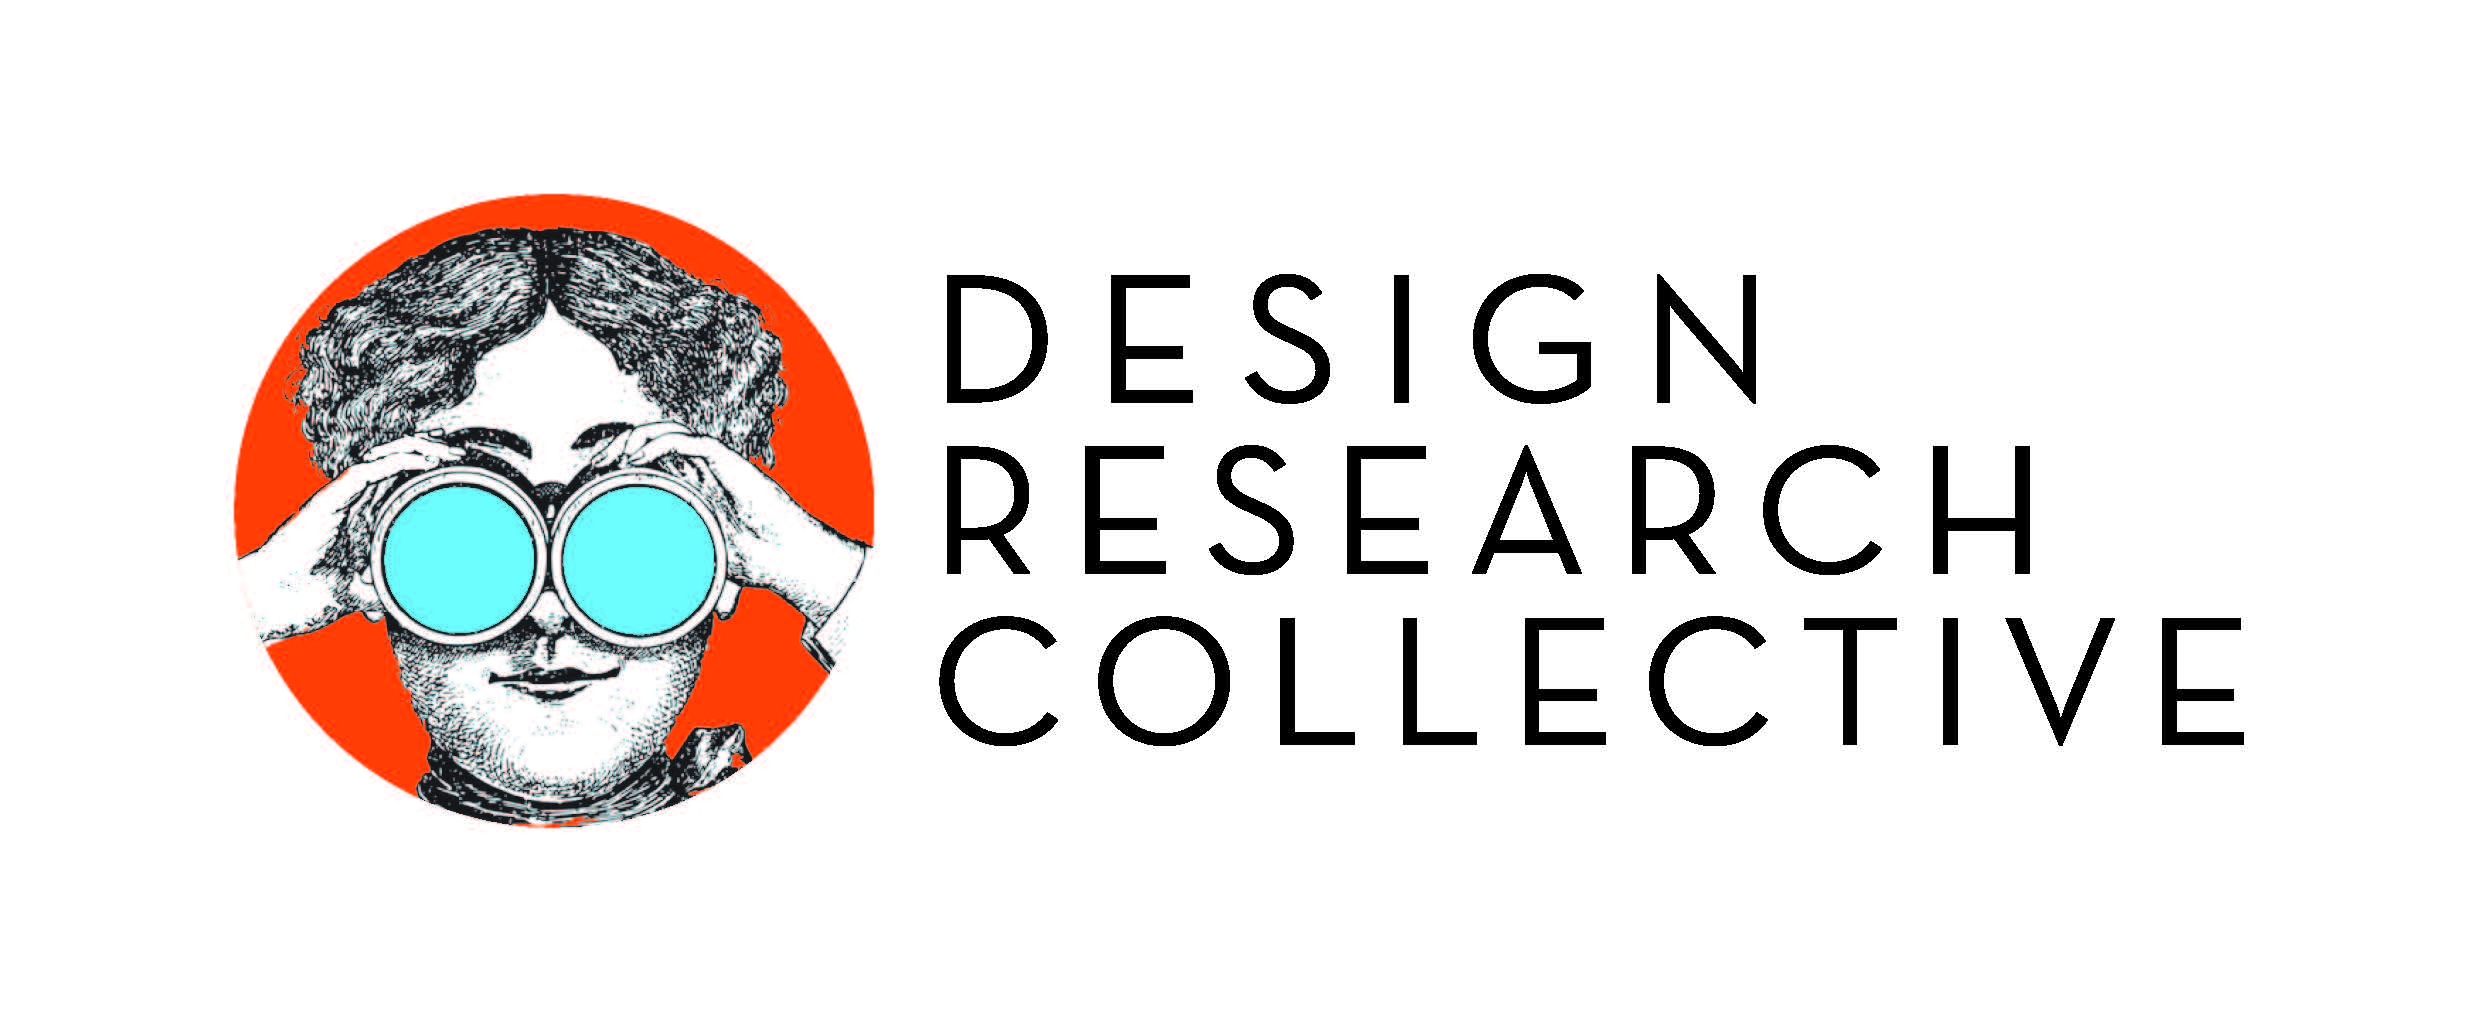 The Design Research Collective